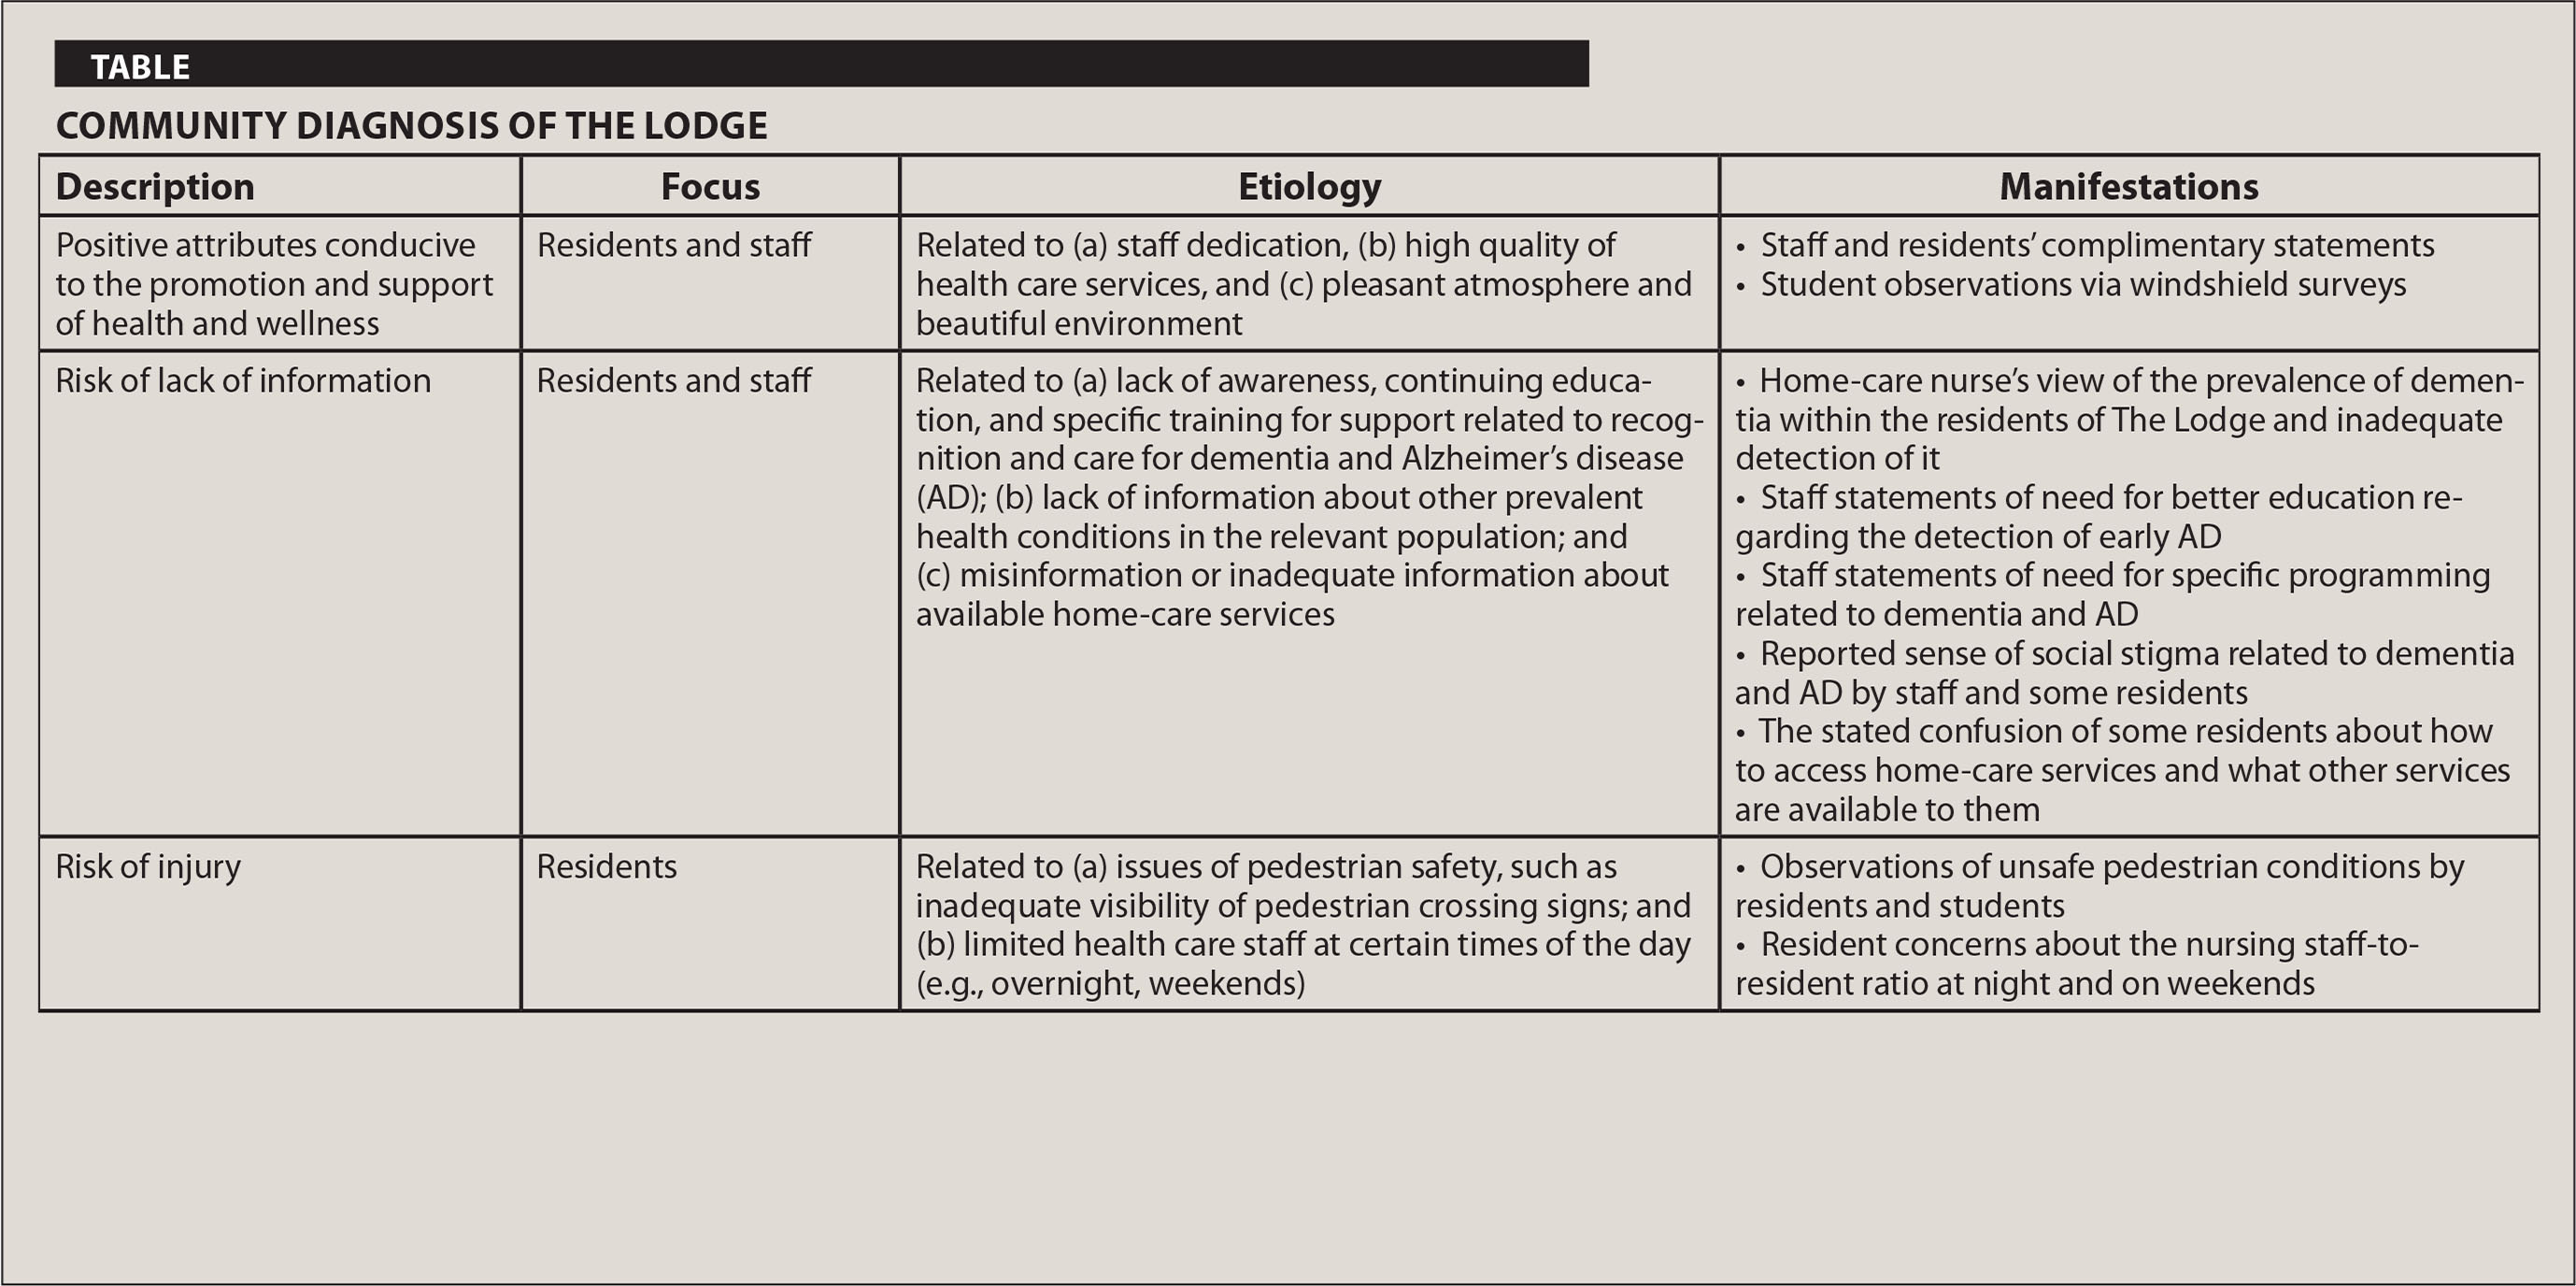 Community Diagnosis of The Lodge